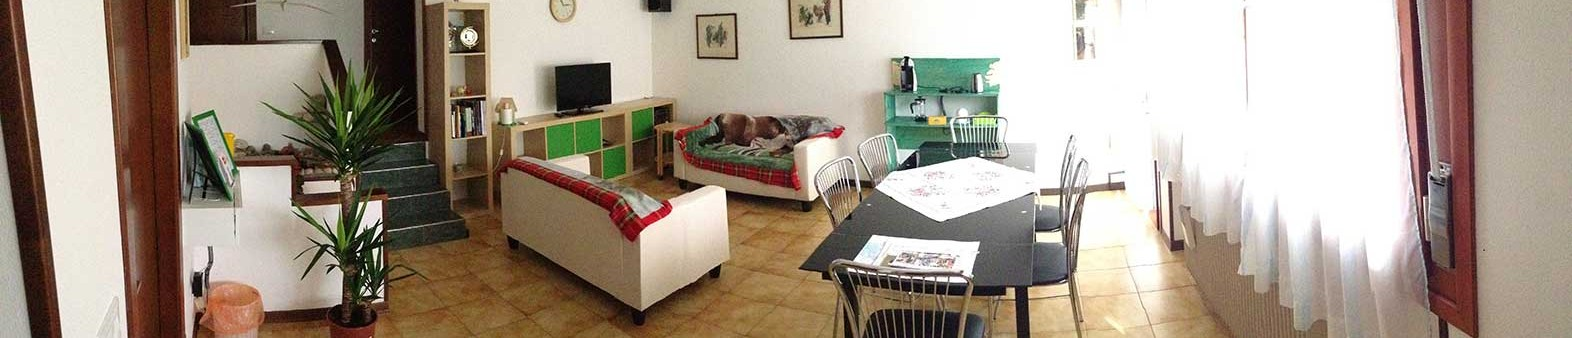 Bed & Breakfast - La Quercia